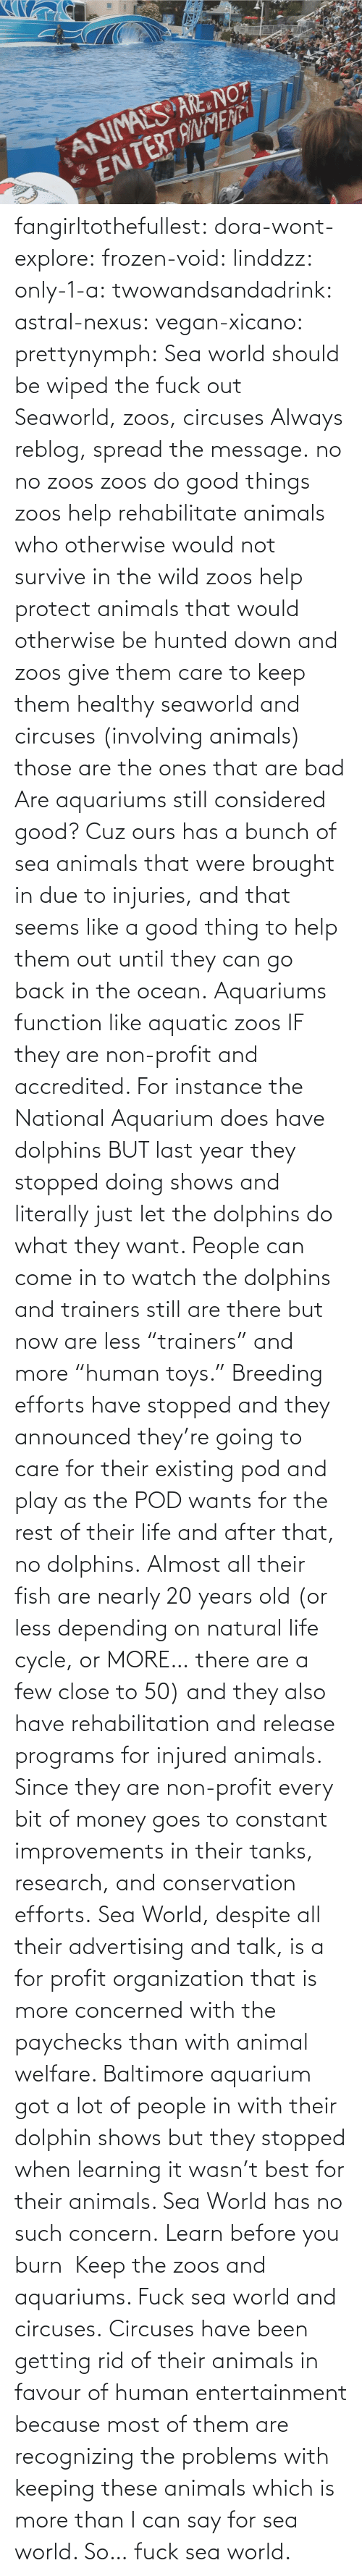 "seems: fangirltothefullest:  dora-wont-explore:  frozen-void:  linddzz:  only-1-a:  twowandsandadrink:  astral-nexus:  vegan-xicano:  prettynymph:  Sea world should be wiped the fuck out  Seaworld, zoos, circuses  Always reblog, spread the message.  no no zoos zoos do good things zoos help rehabilitate animals who otherwise would not survive in the wild zoos help protect animals that would otherwise be hunted down and zoos give them care to keep them healthy seaworld and circuses (involving animals) those are the ones that are bad  Are aquariums still considered good? Cuz ours has a bunch of sea animals that were brought in due to injuries, and that seems like a good thing to help them out until they can go back in the ocean.  Aquariums function like aquatic zoos IF they are non-profit and accredited. For instance the National Aquarium does have dolphins BUT last year they stopped doing shows and literally just let the dolphins do what they want. People can come in to watch the dolphins and trainers still are there but now are less ""trainers"" and more ""human toys."" Breeding efforts have stopped and they announced they're going to care for their existing pod and play as the POD wants for the rest of their life and after that, no dolphins. Almost all their fish are nearly 20 years old (or less depending on natural life cycle, or MORE… there are a few close to 50) and they also have rehabilitation and release programs for injured animals. Since they are non-profit every bit of money goes to constant improvements in their tanks, research, and conservation efforts. Sea World, despite all their advertising and talk, is a for profit organization that is more concerned with the paychecks than with animal welfare. Baltimore aquarium got a lot of people in with their dolphin shows but they stopped when learning it wasn't best for their animals. Sea World has no such concern.  Learn before you burn   Keep the zoos and aquariums. Fuck sea world and circuses.  Circuses have been getting rid of  their animals in favour of human entertainment because most of them are recognizing the problems with keeping these animals which is more than I can say for sea world. So… fuck sea world."